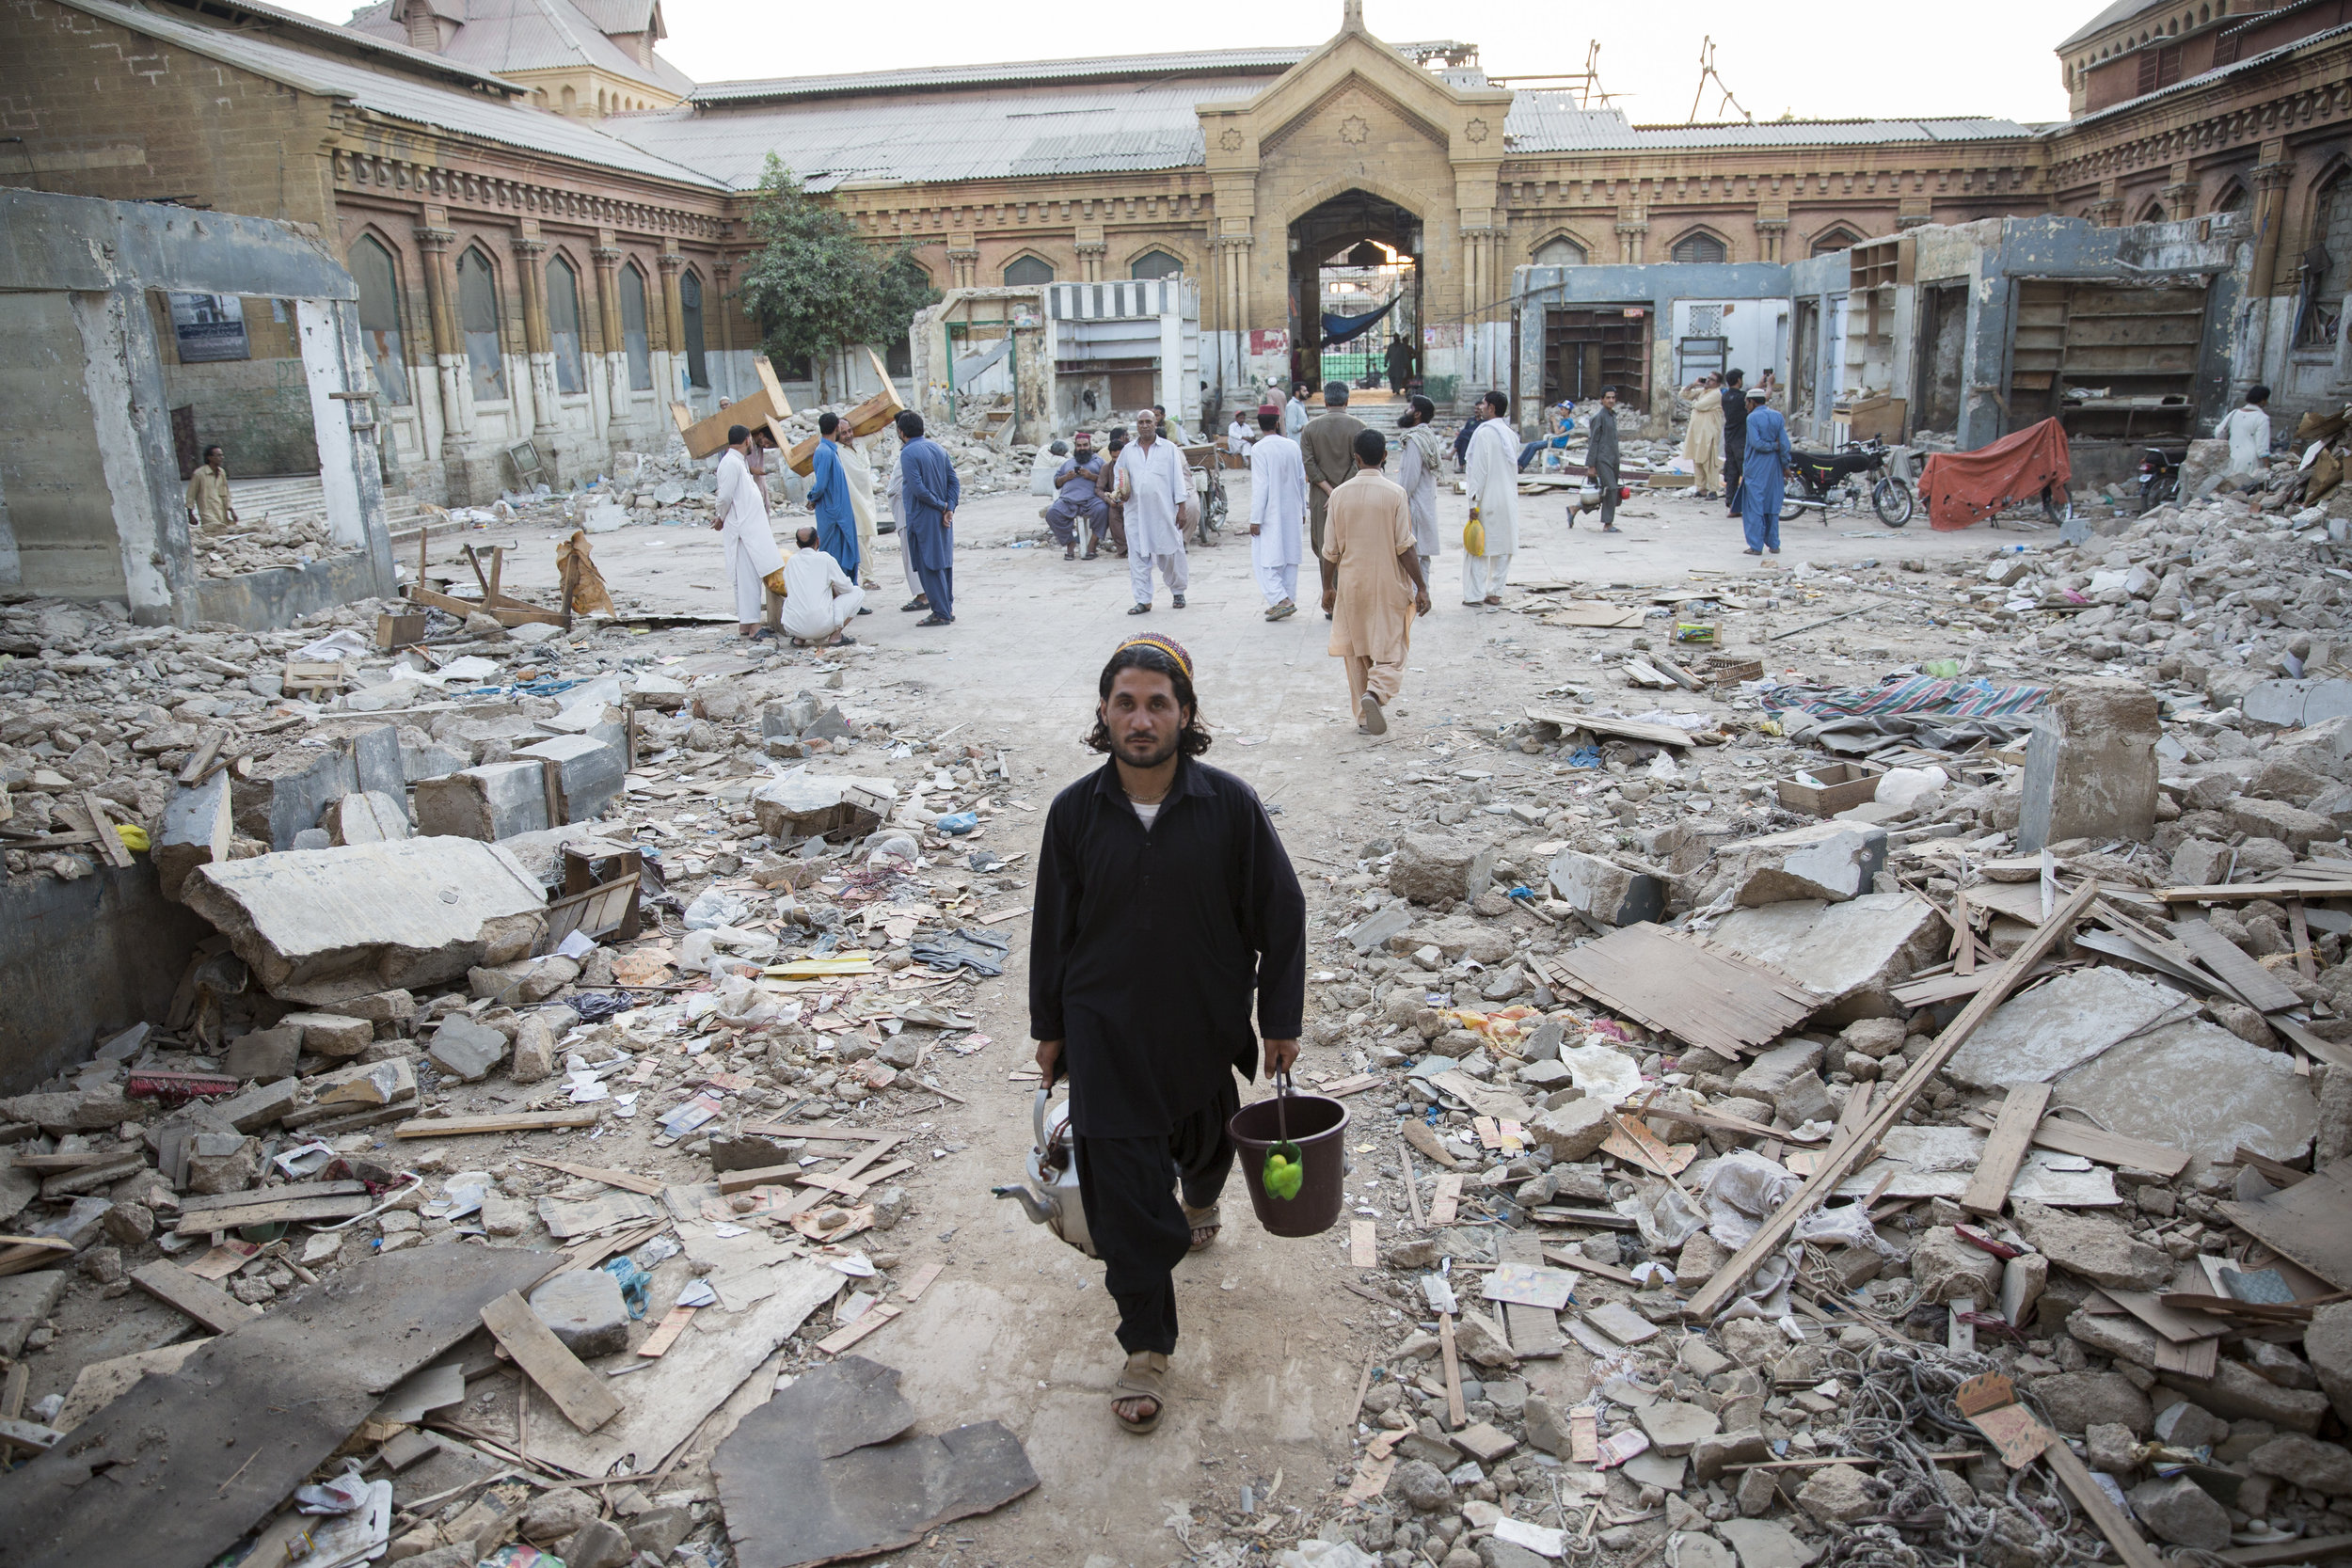 Empress market where shops were recently bulldozed as part of an anti-encroachment drive in Karachi, Pakistan, on Nov 22, 2018.